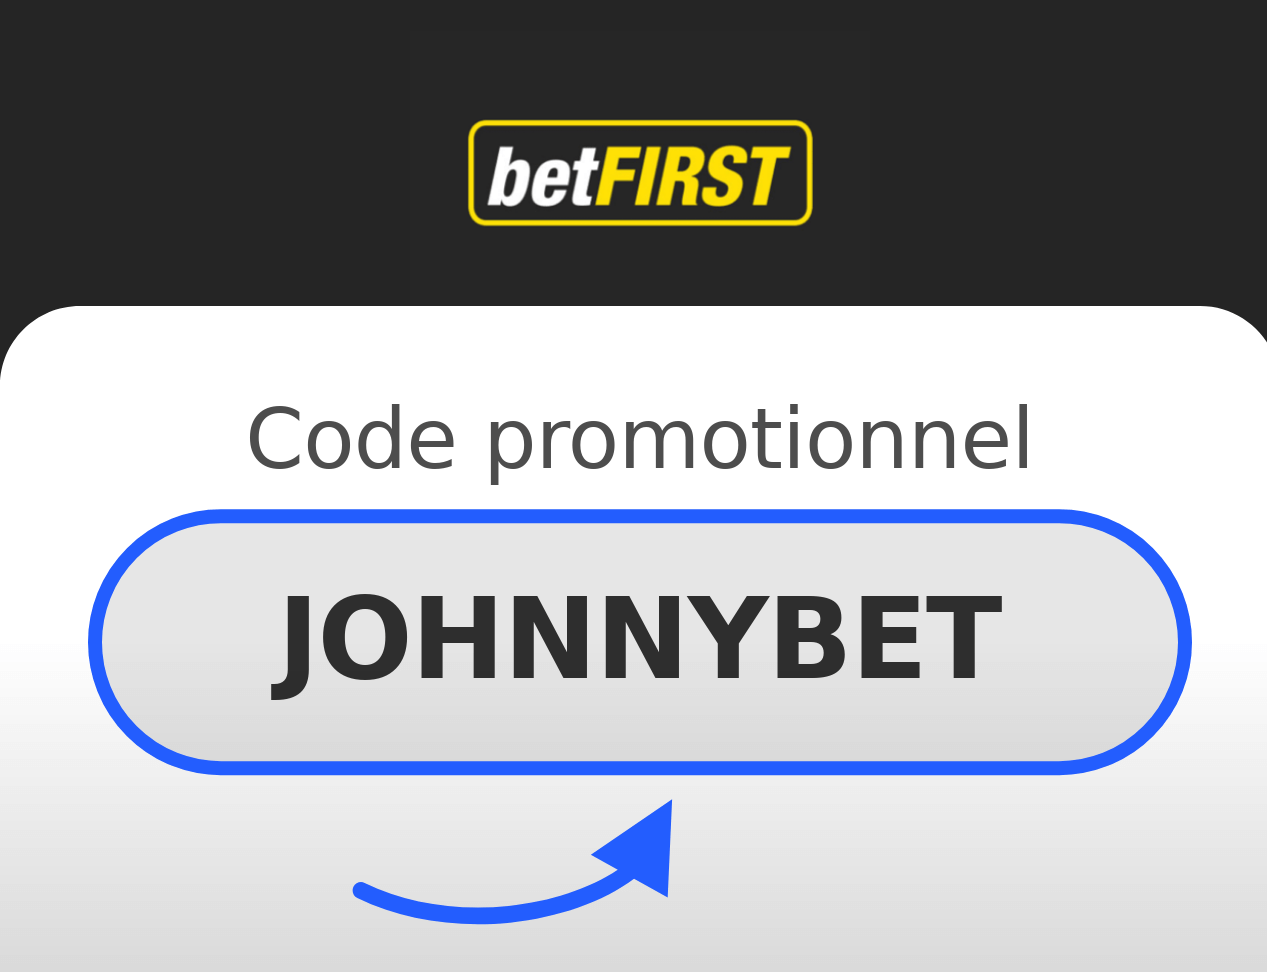 Code promotionnel Betfirst